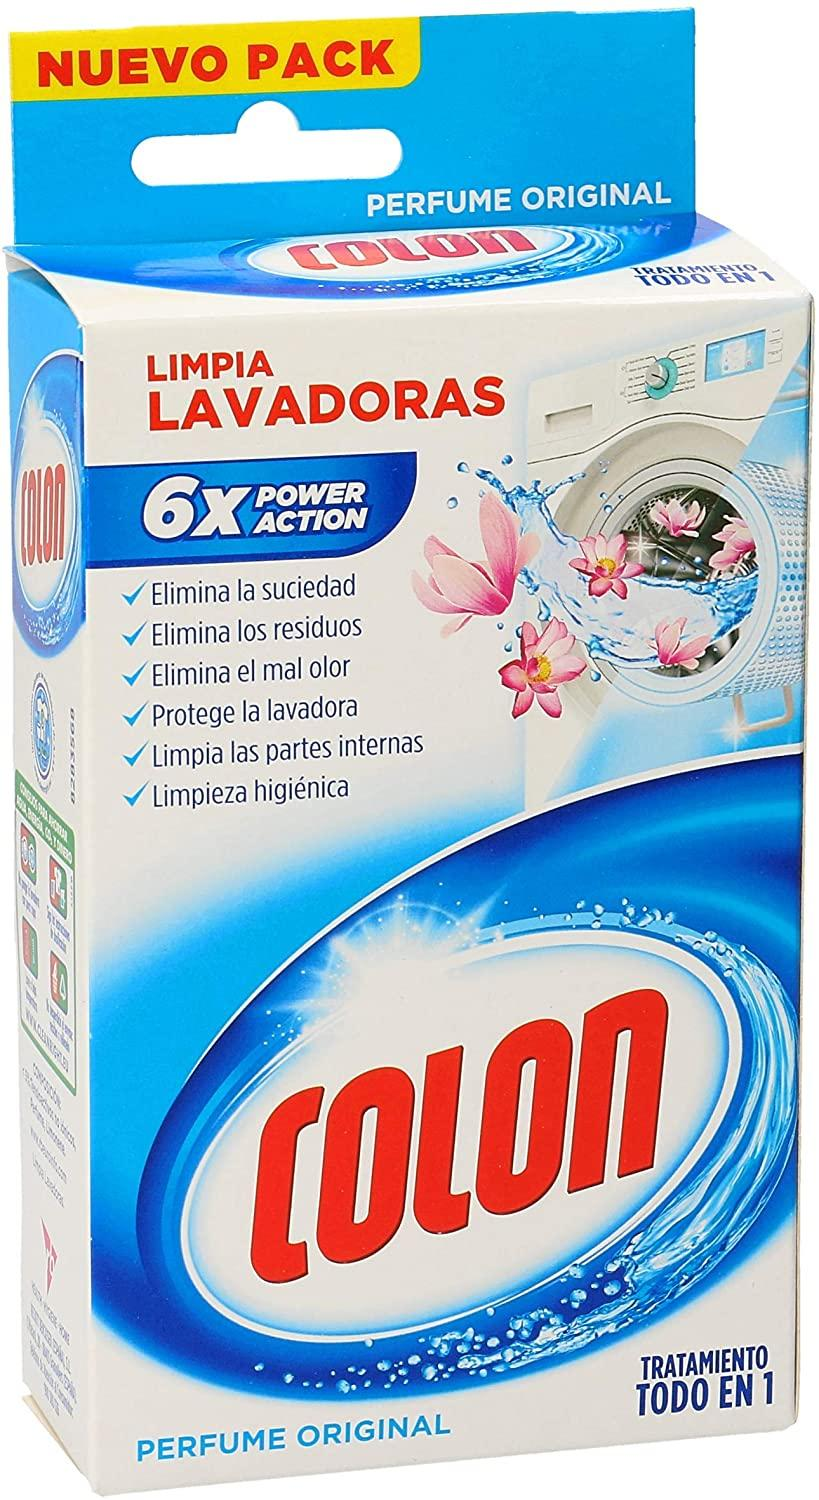 Colon limpialavadoras 250ml